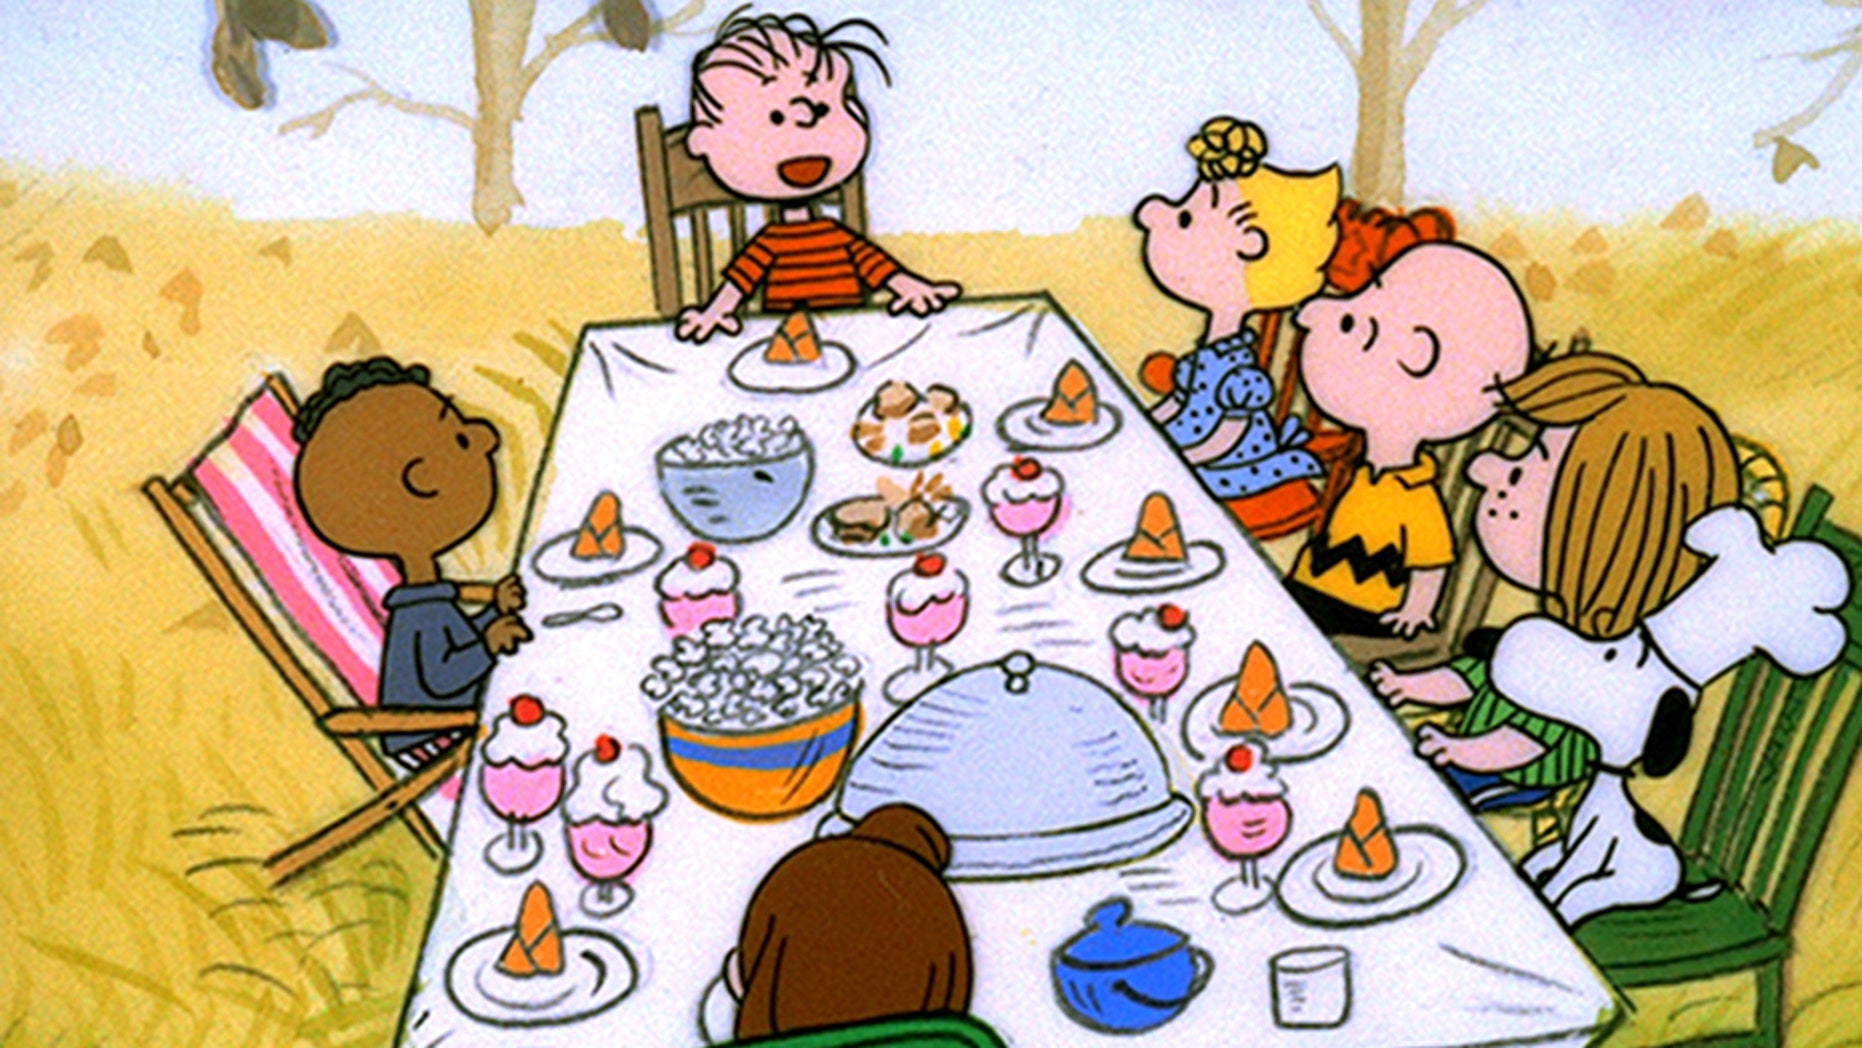 a charlie brown thanksgiving is getting heat for its portrayal of a black character